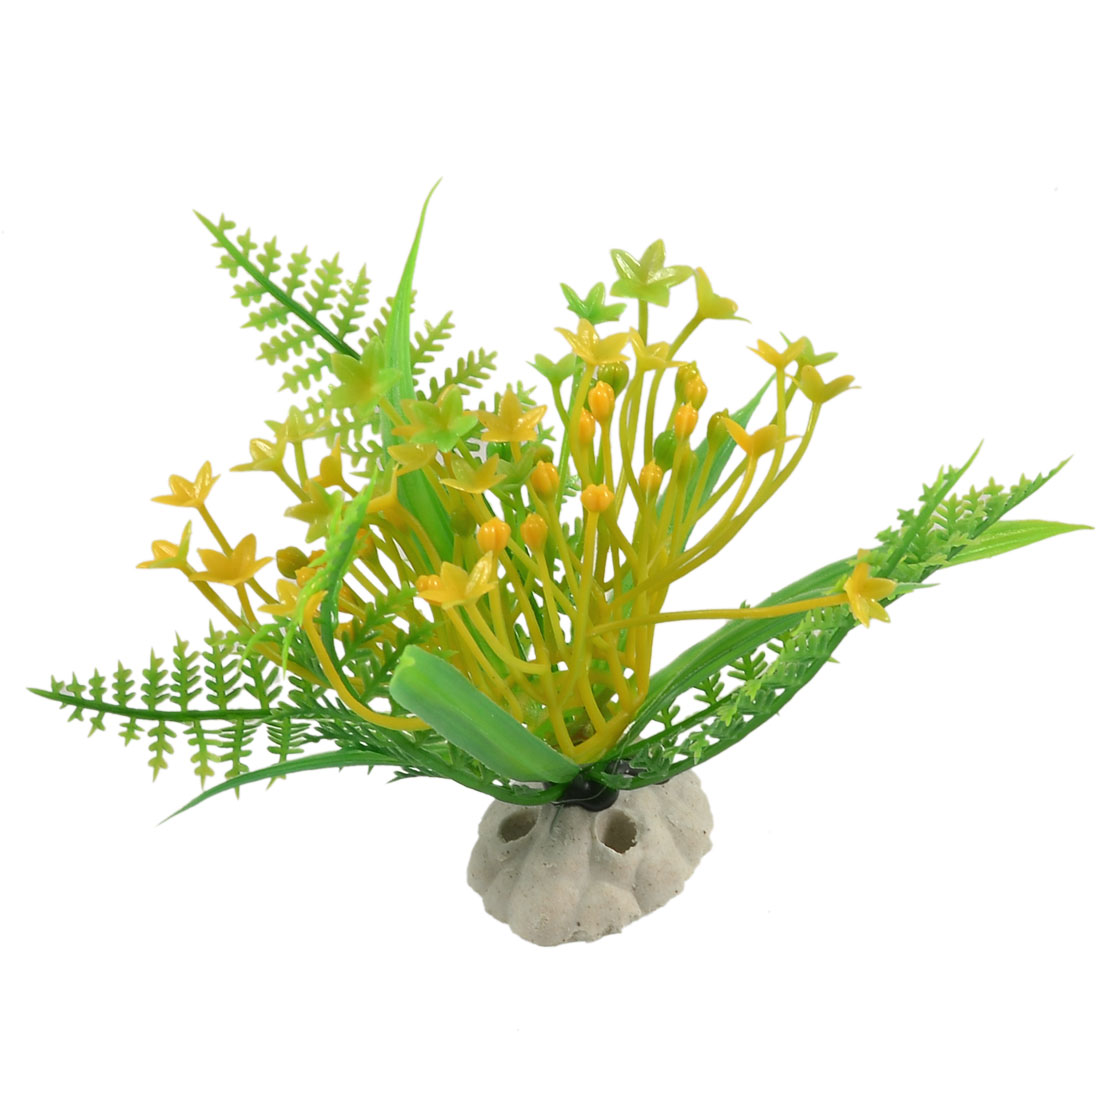 Yellow Flower Aquatic Plastic Plant Aquarium Ornament Aquascaping 3.6""